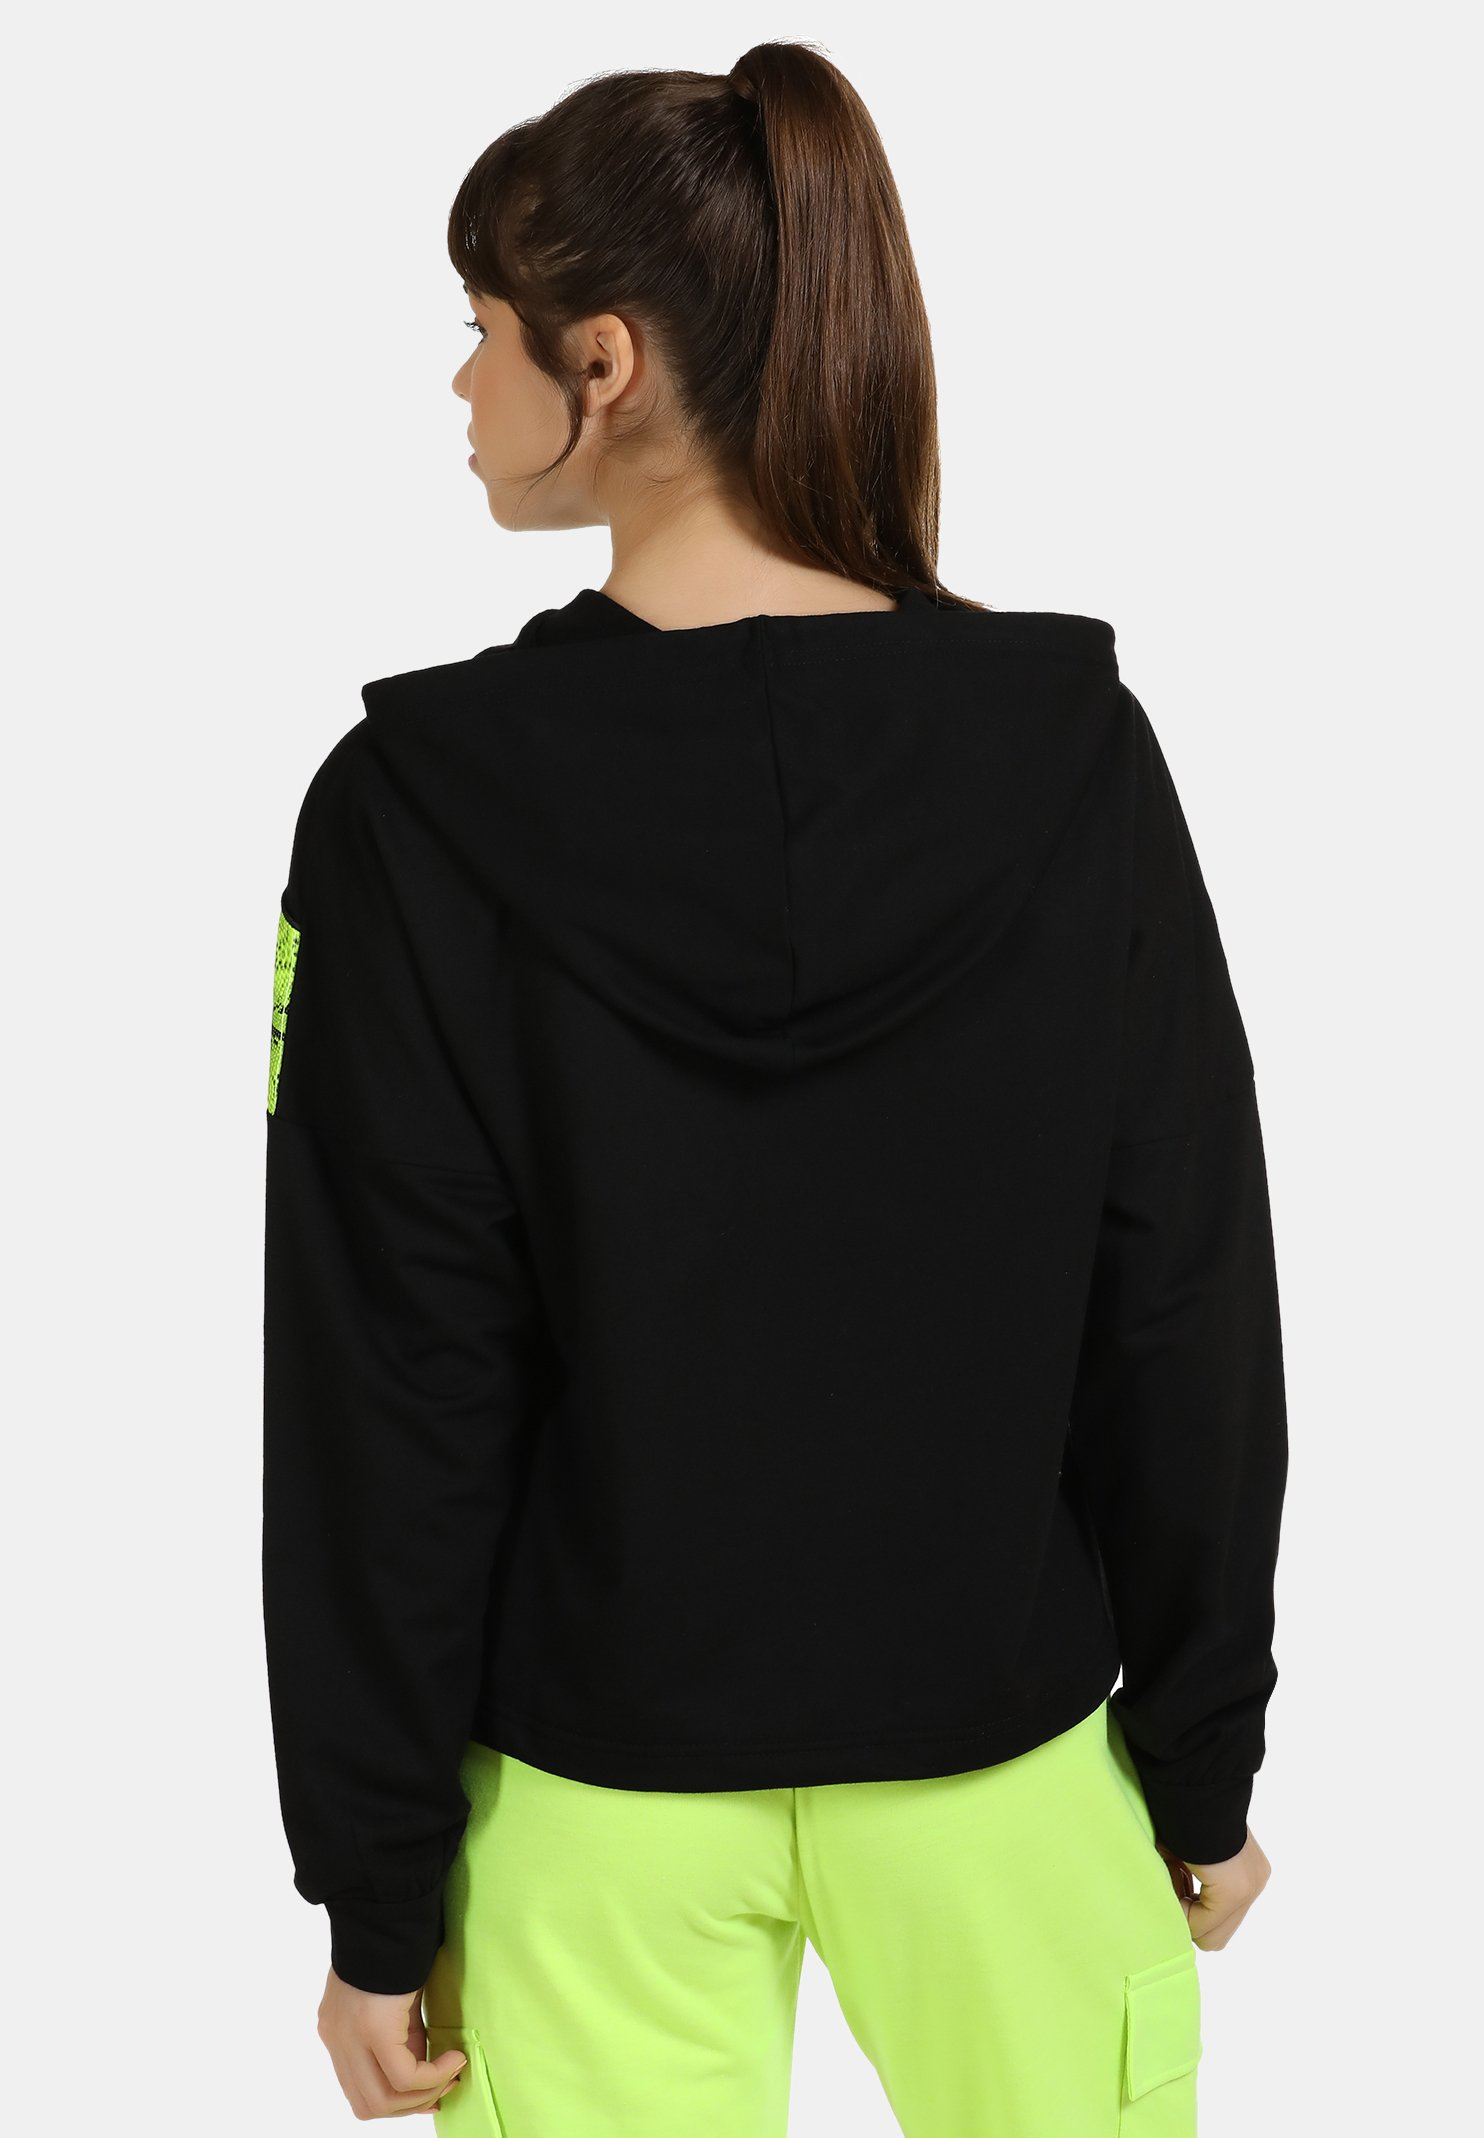 Mymo Athlsr Sweater - Black